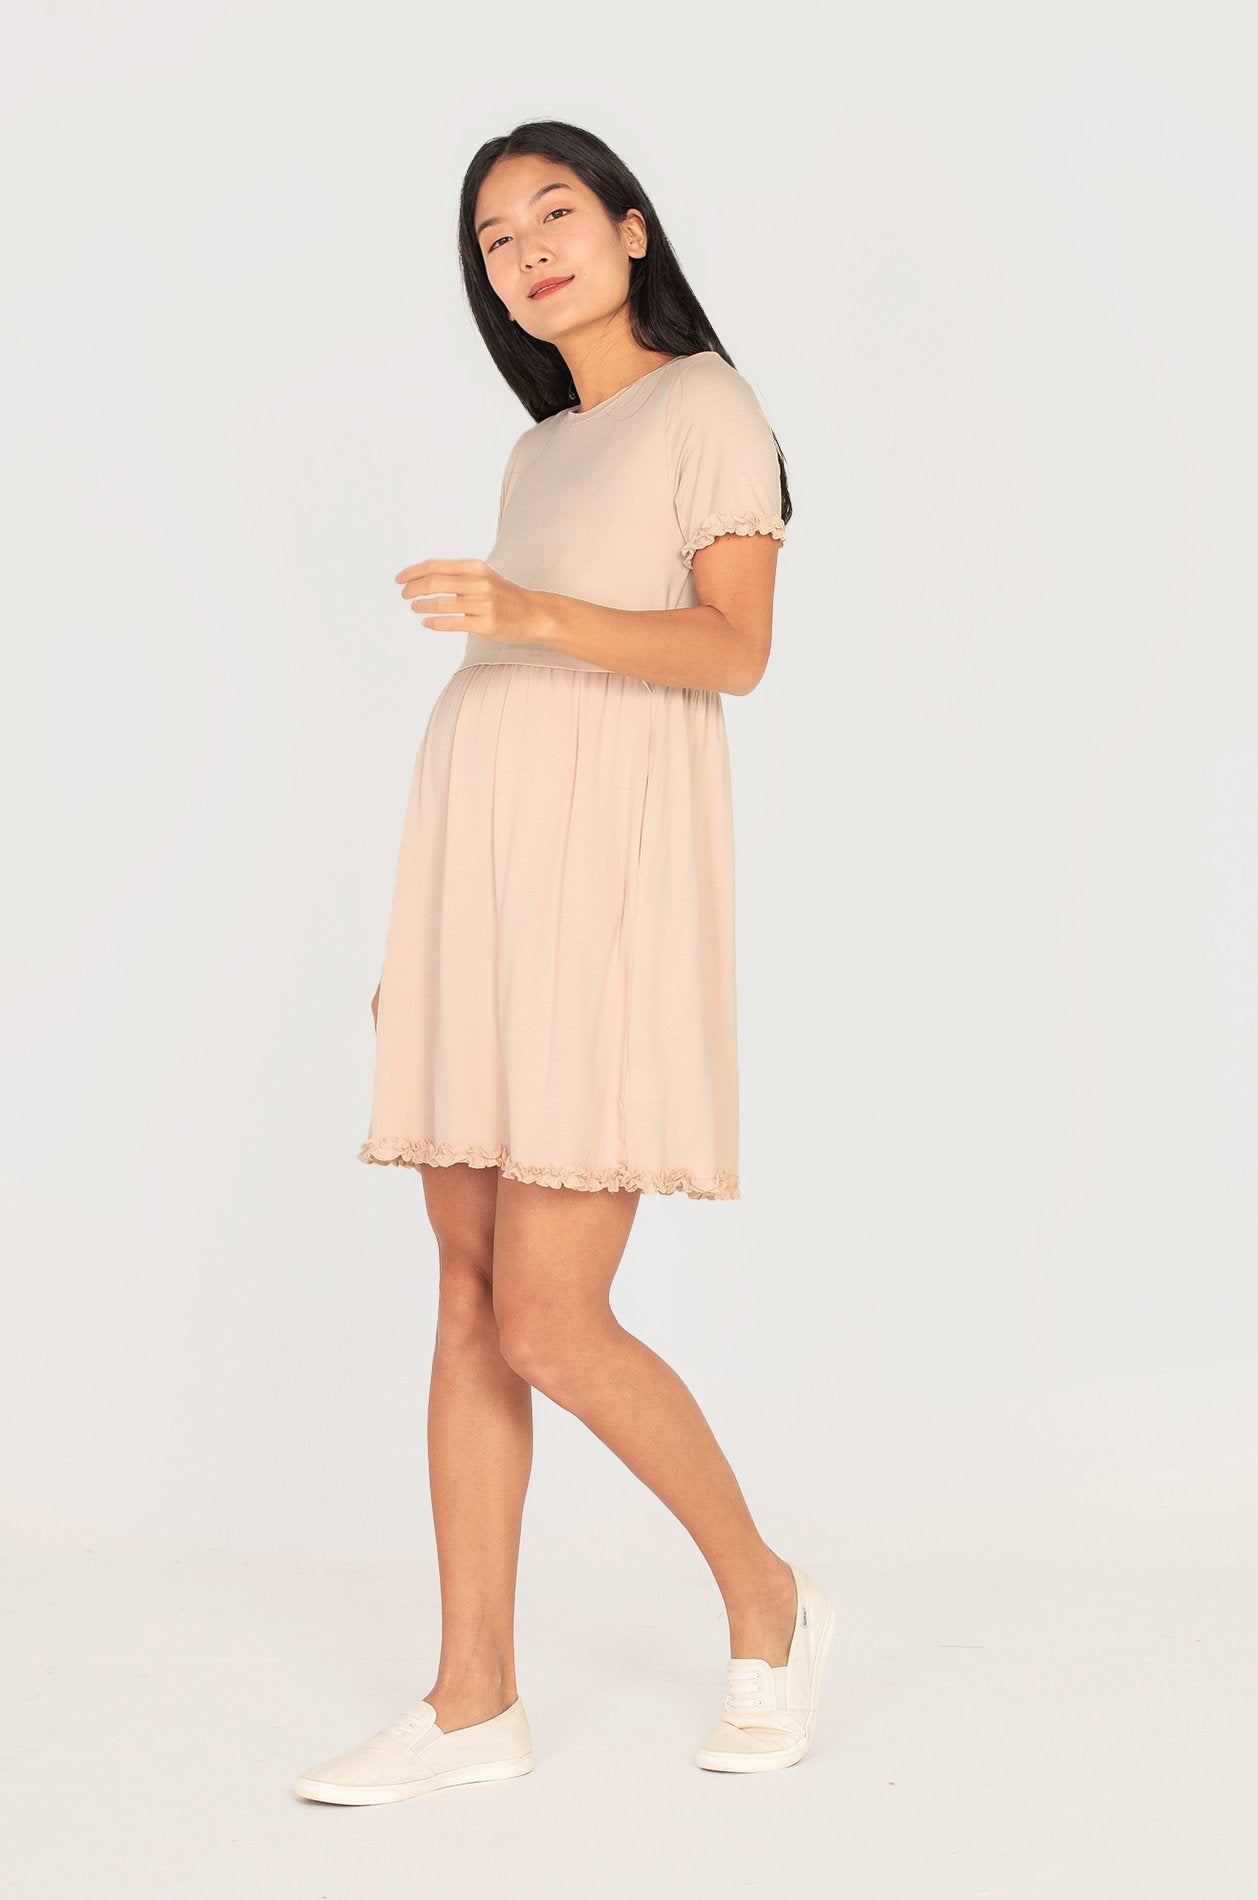 Paterina Frills Nursing Dress In Cream Nursing Wear Jump Eat Cry